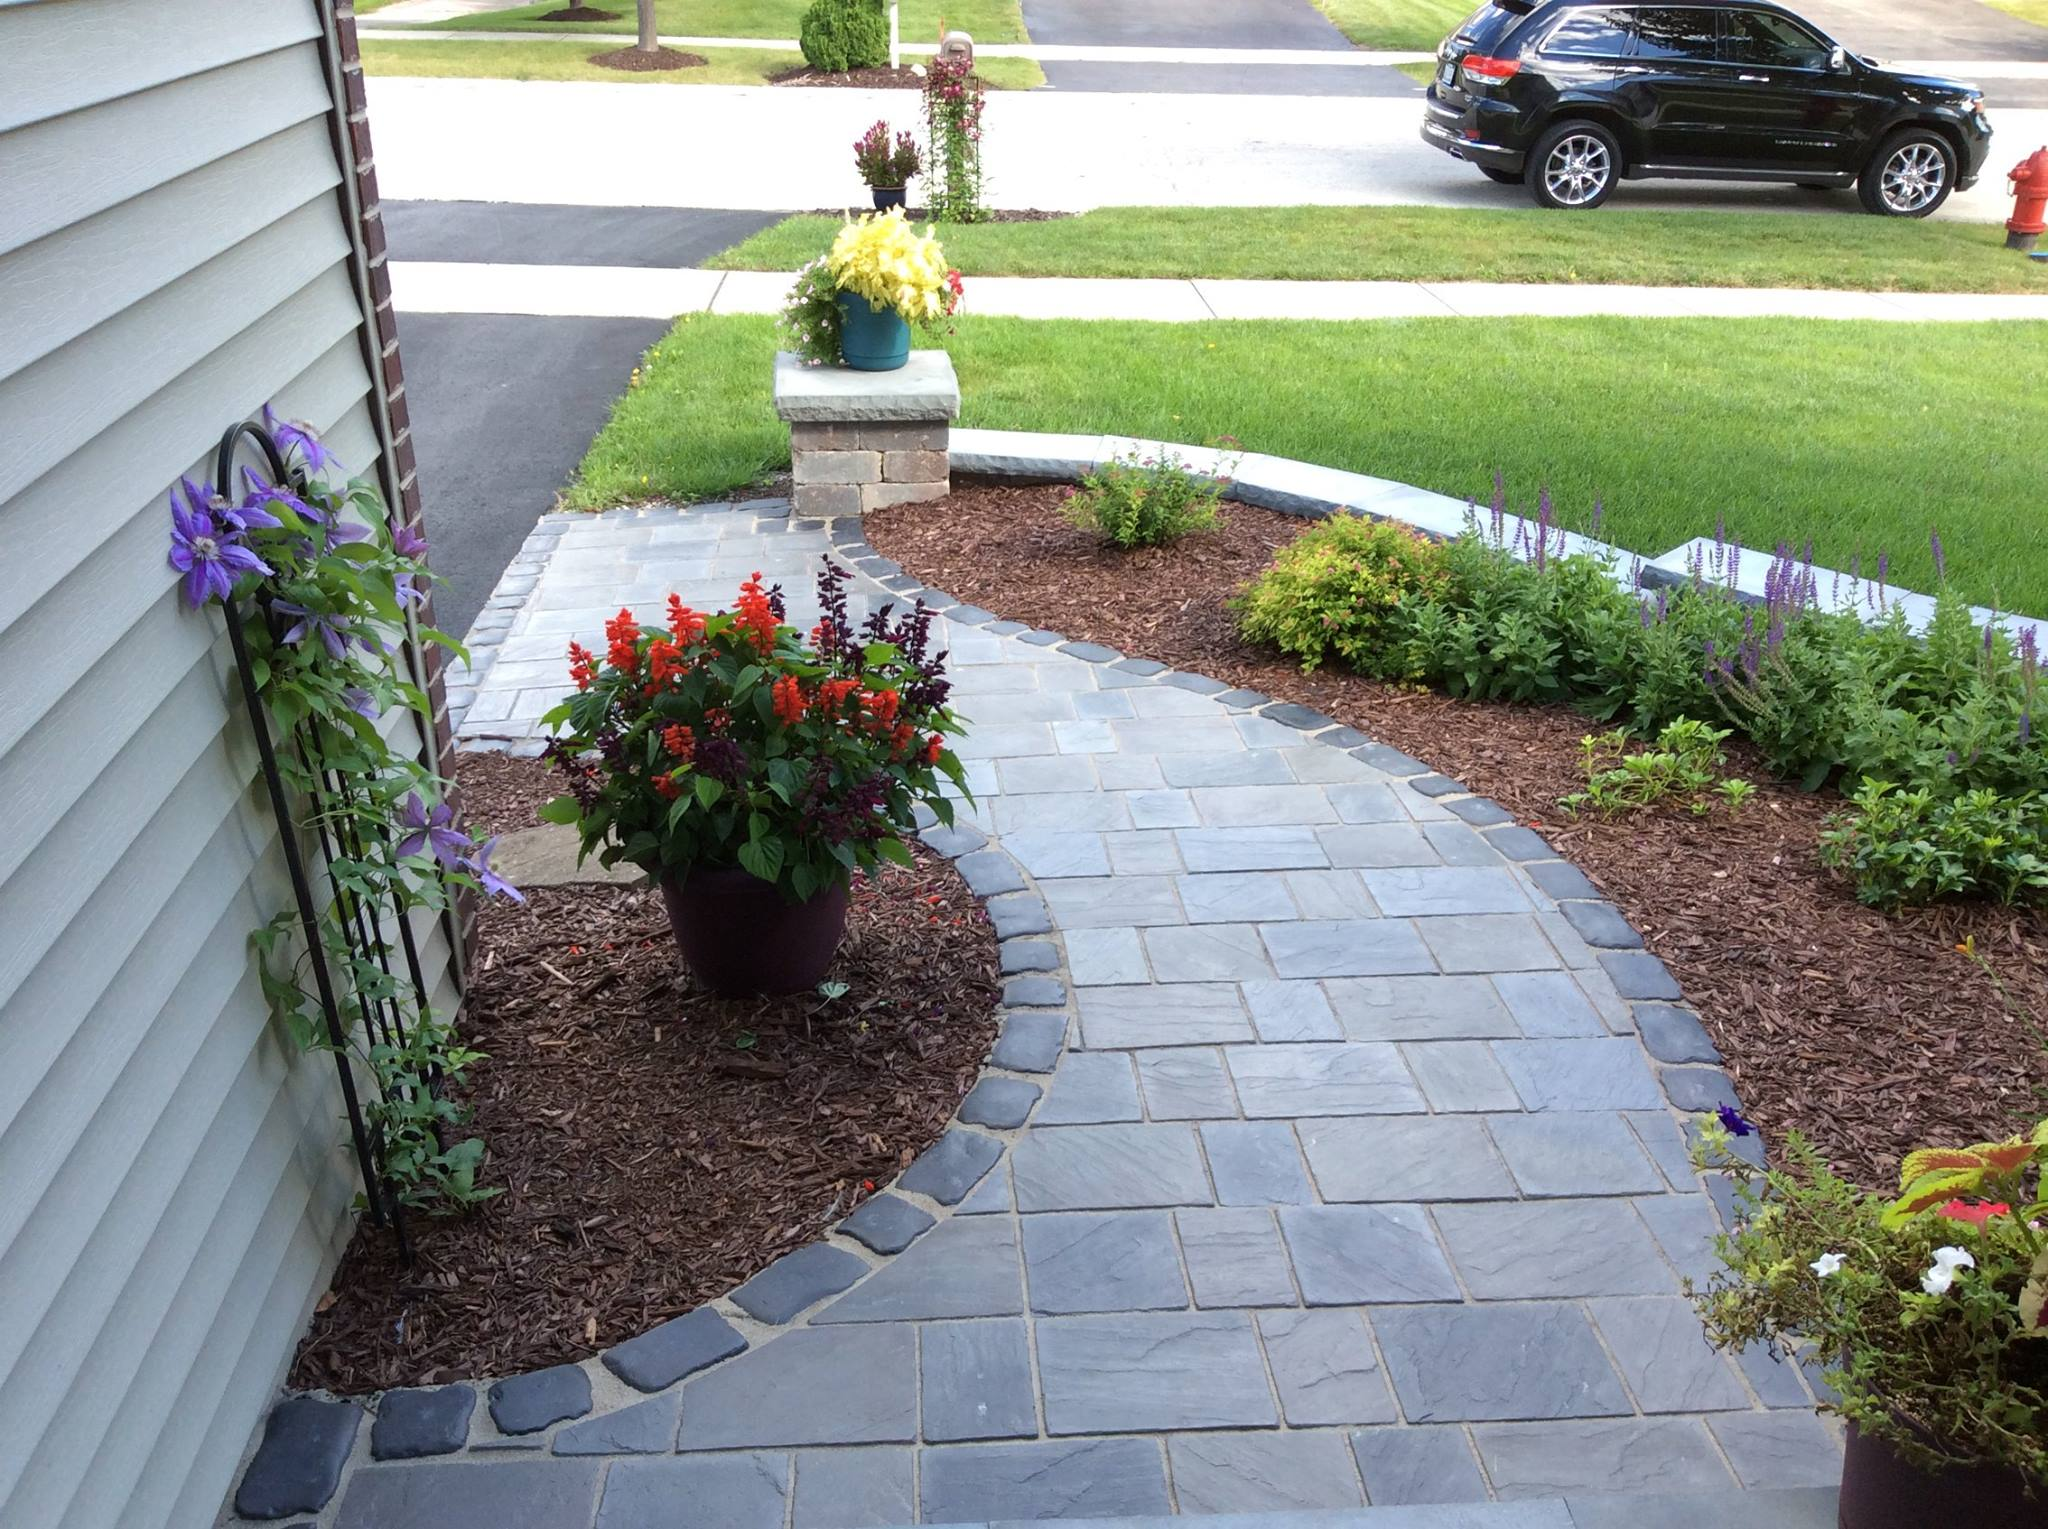 Glen Ellyn, Illinois brick paving, including brick patio and driveway